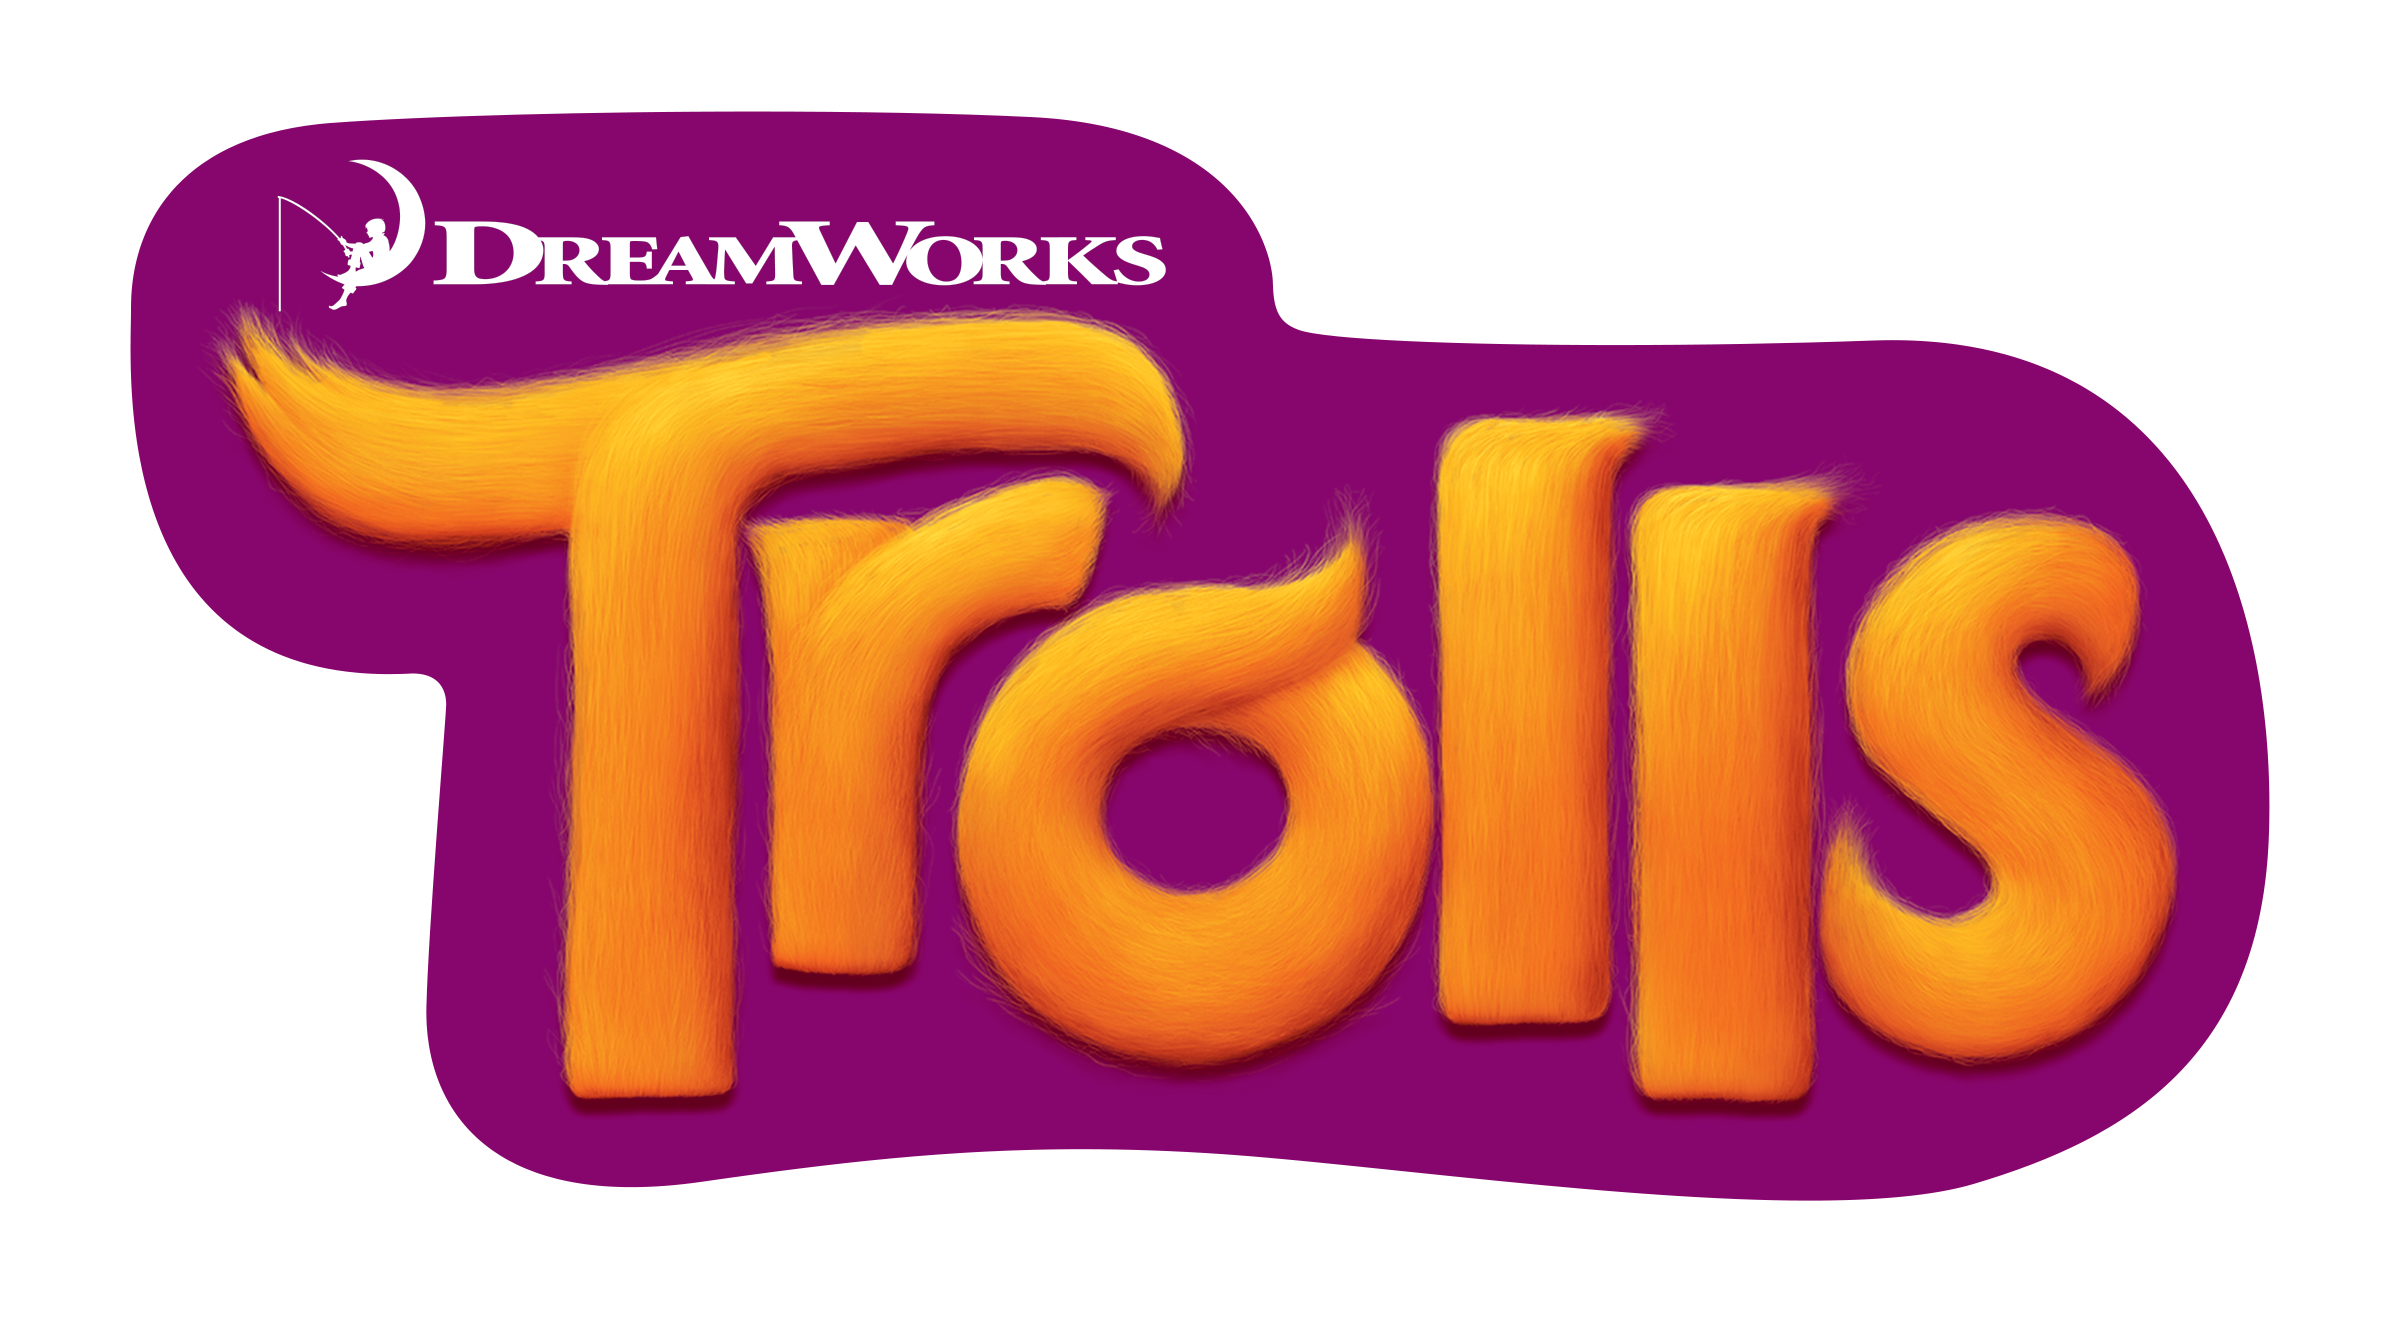 Trolls logo png. Collection random house children